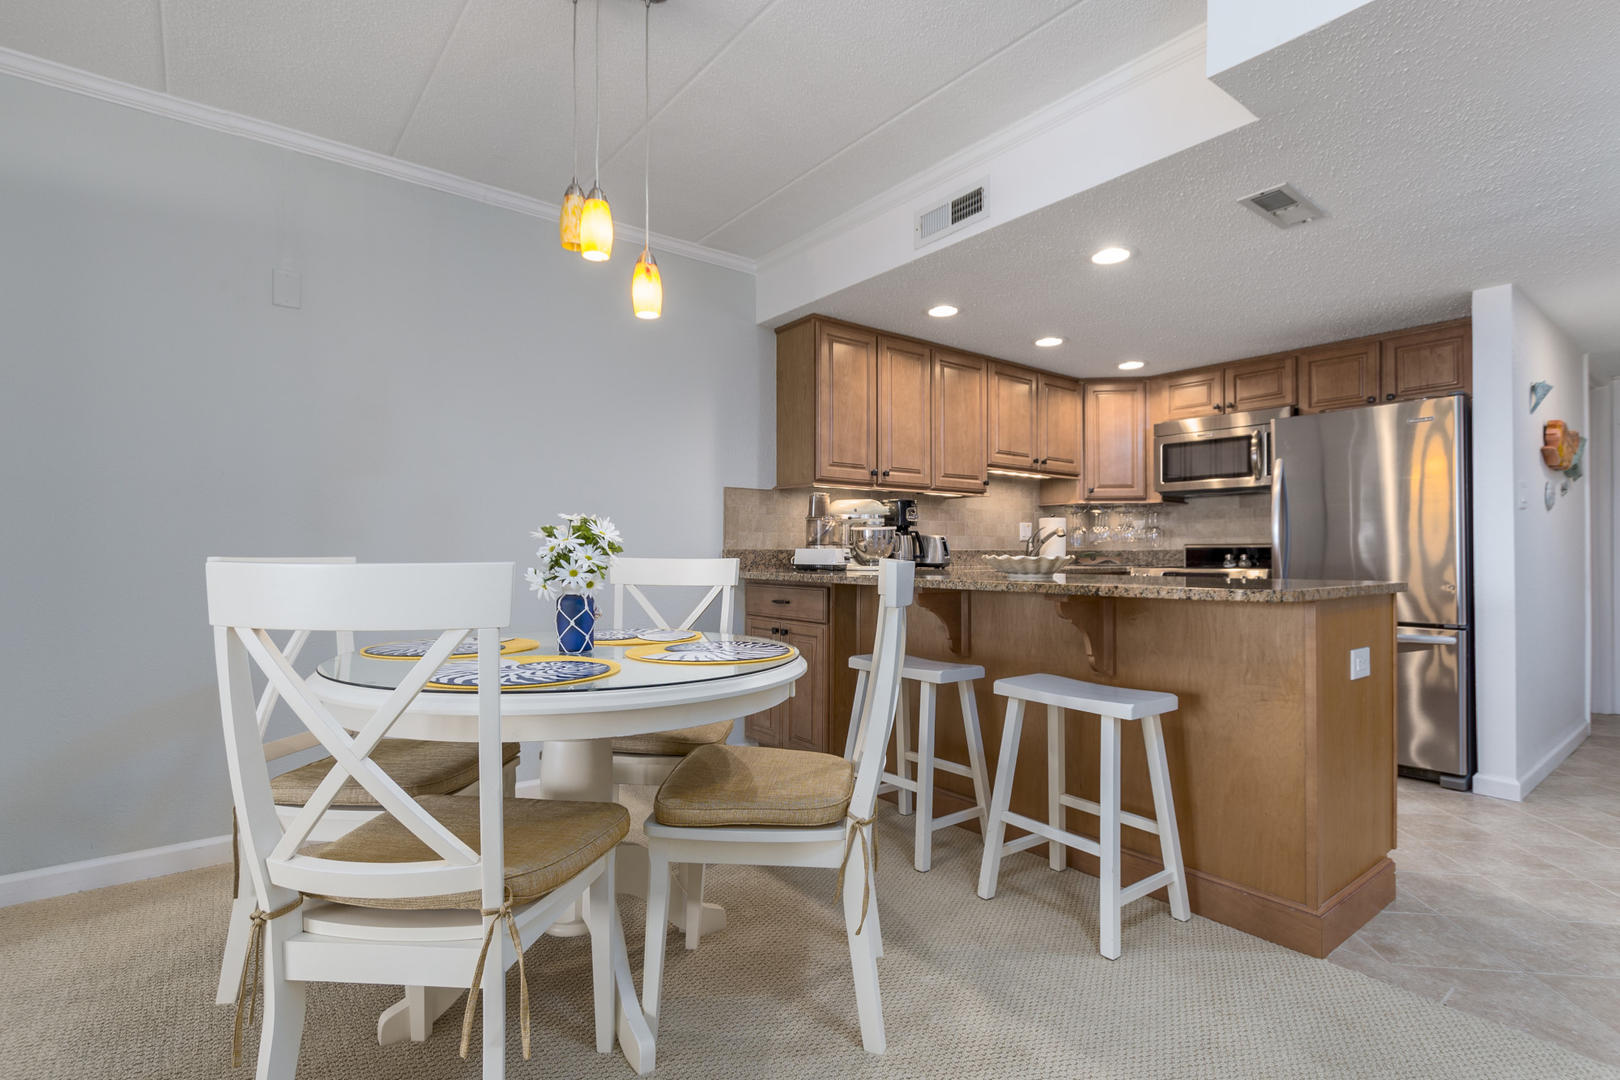 Pelican Beach 102 - Kitchen and Dining Area